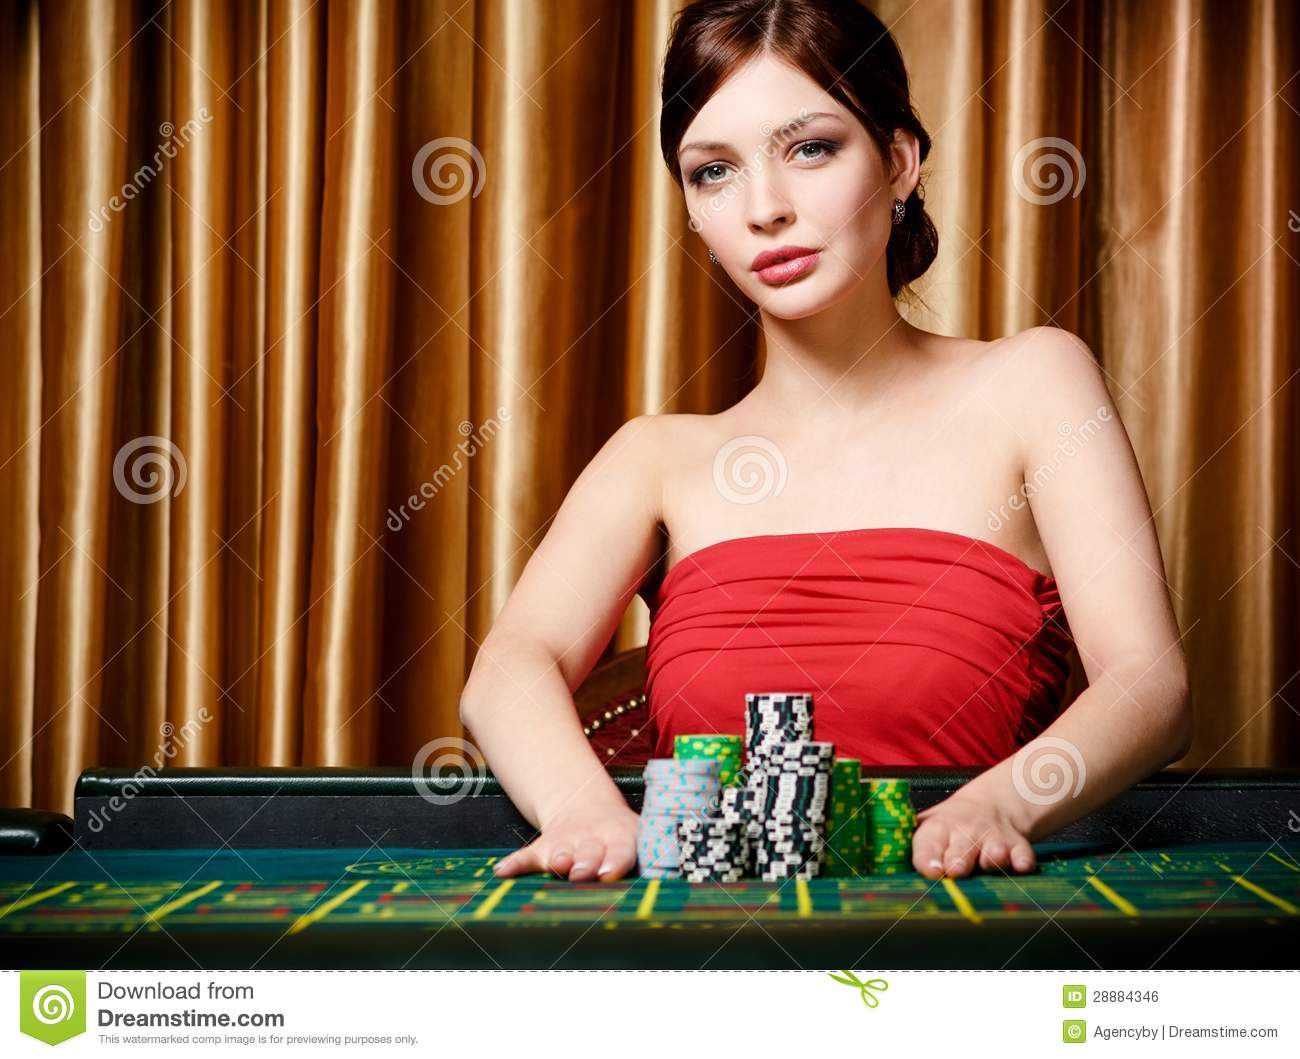 Roulette women gambling good life